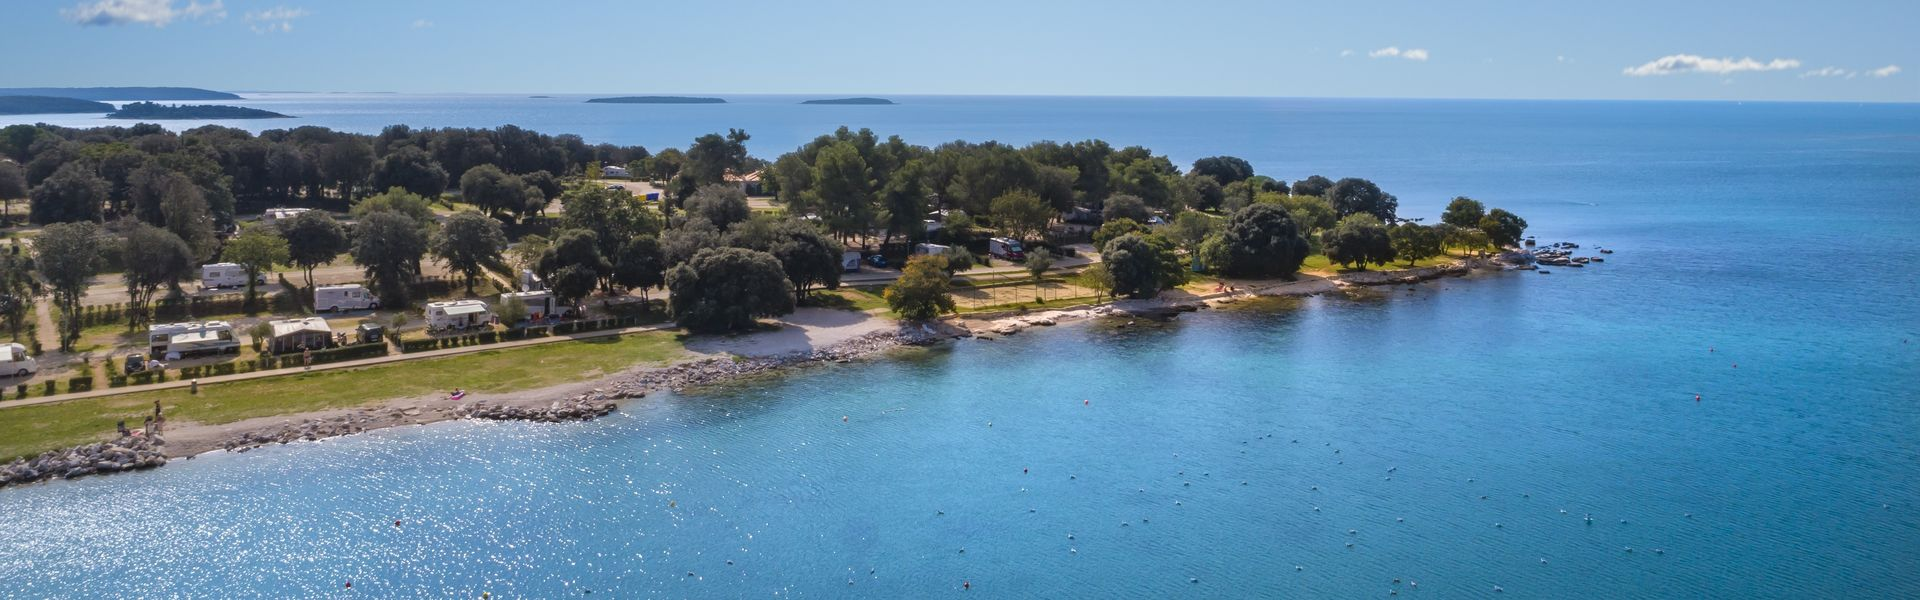 Campings in Rovinj